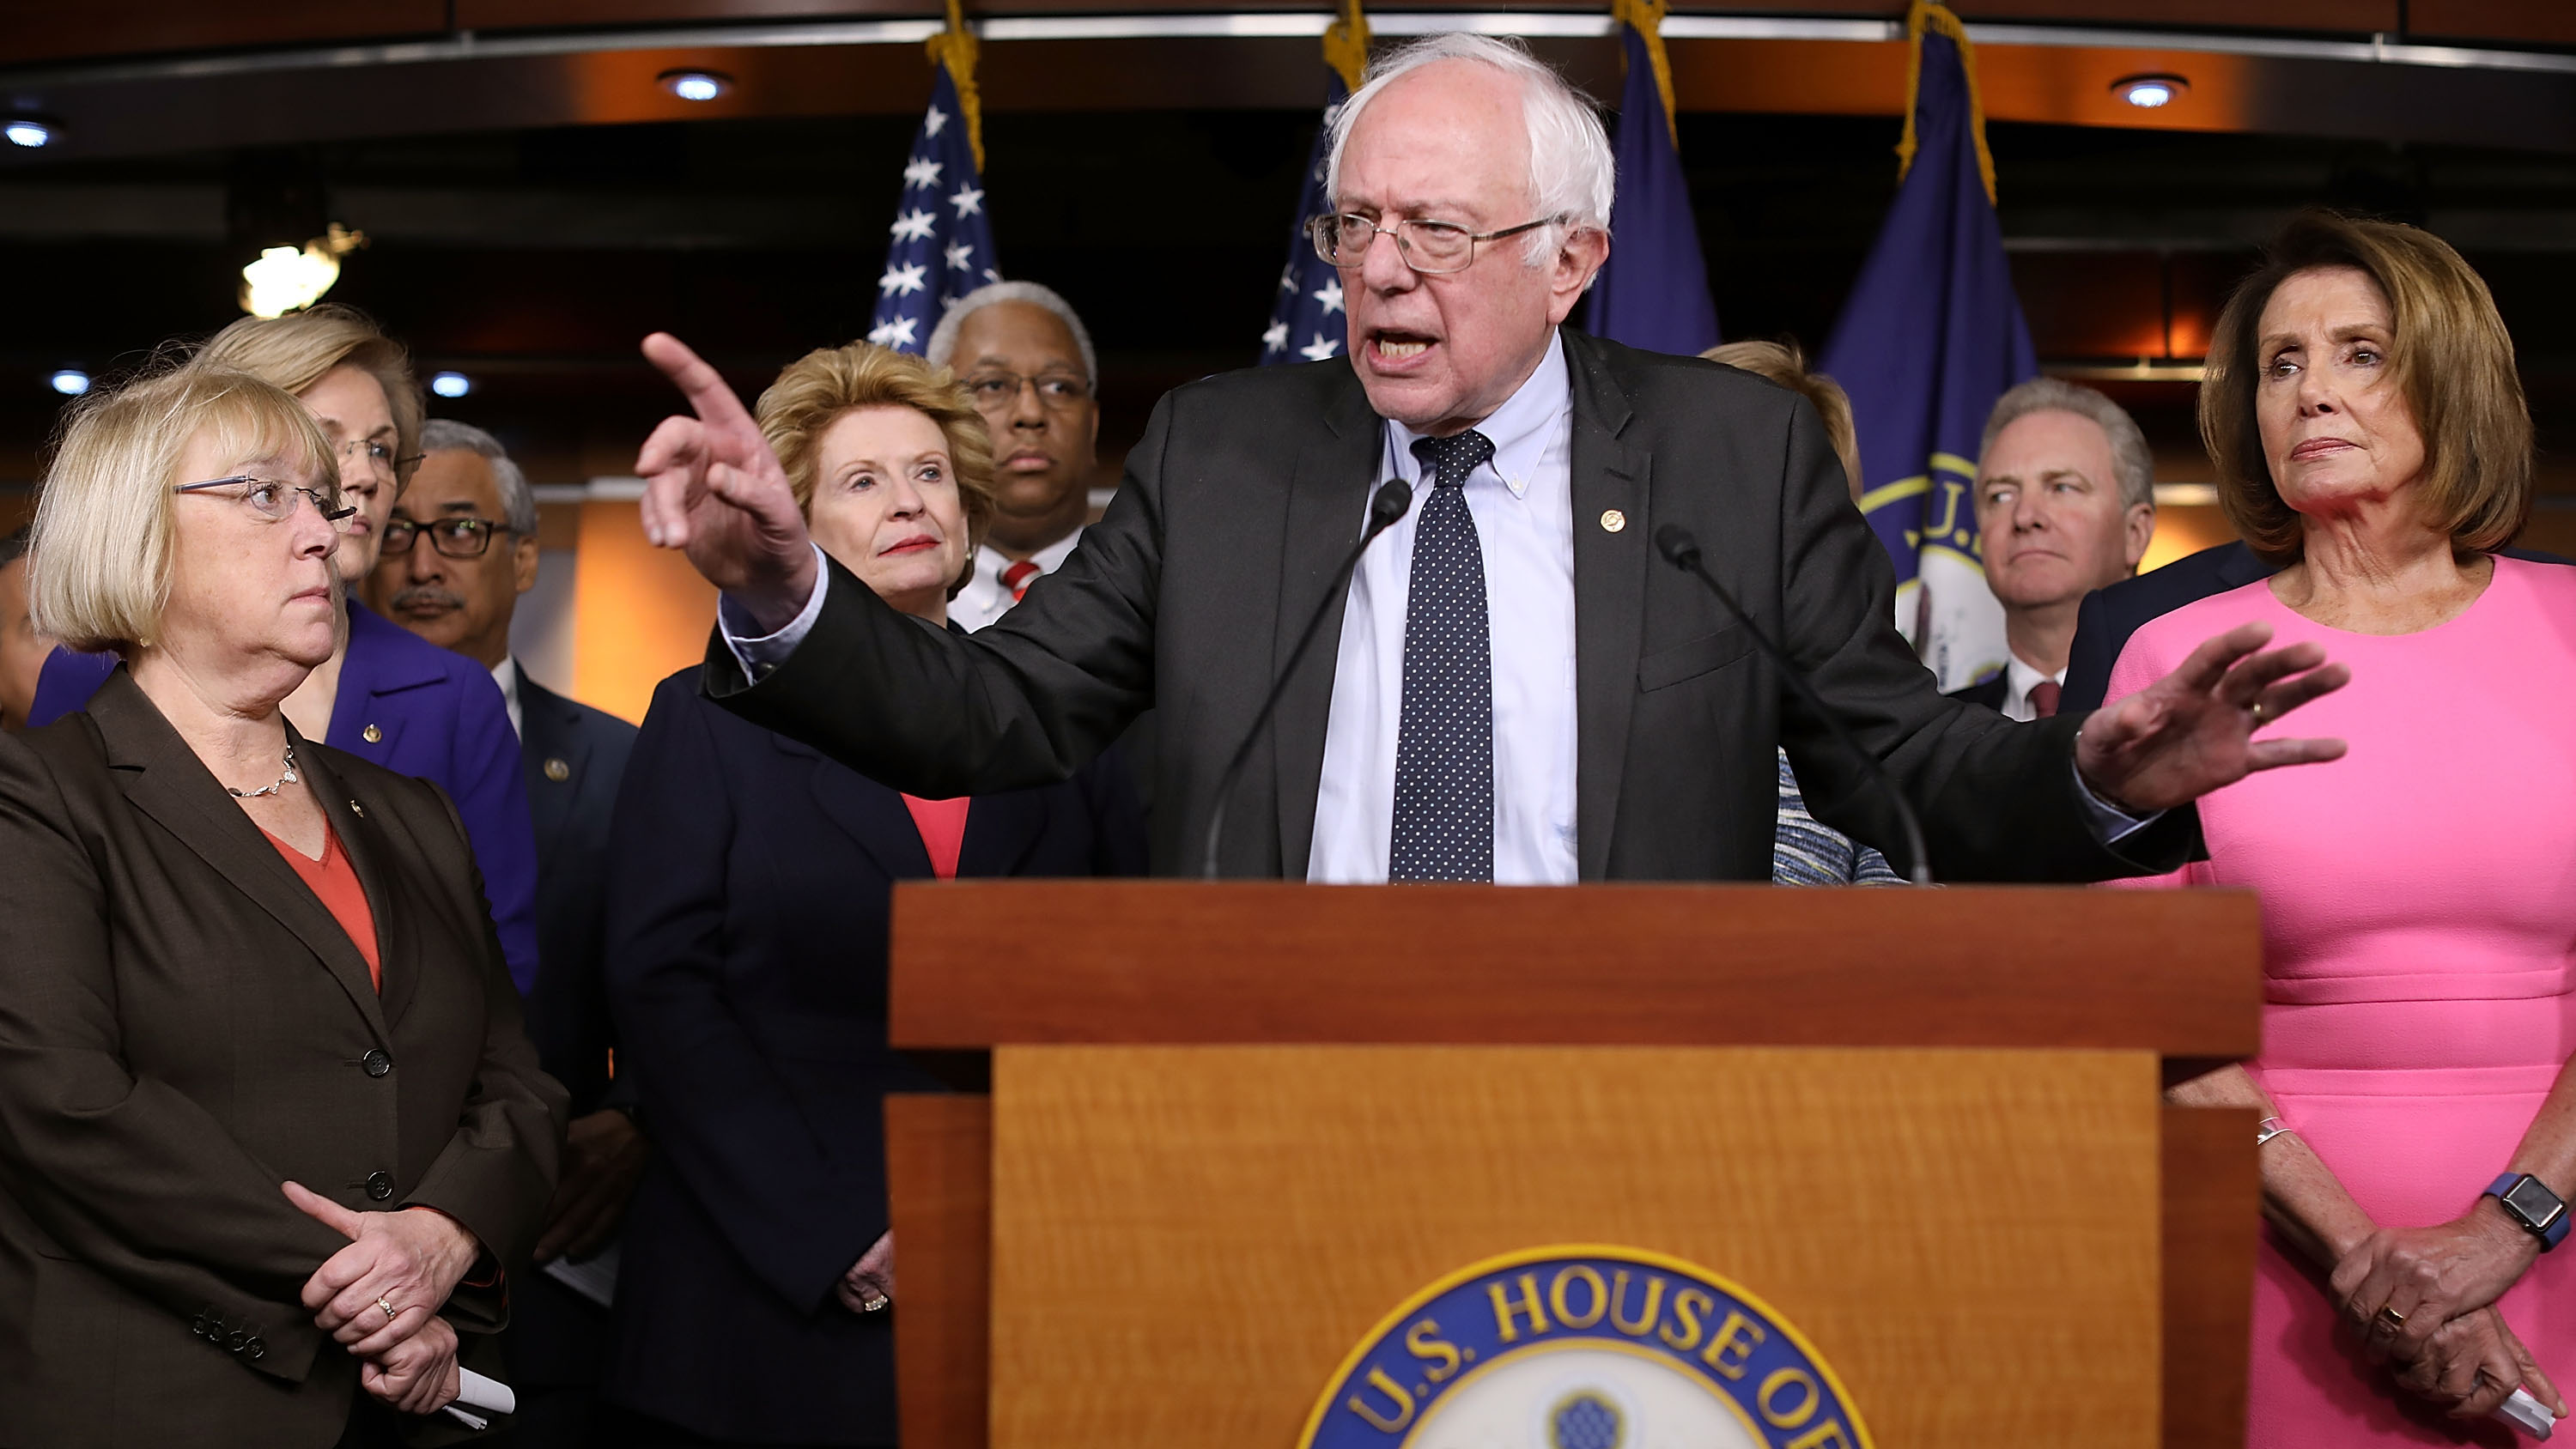 Sen. Bernie Sanders (I-VT) and House Minority Leader Nancy Pelosi (D-CA) join fellow Democrats from both the House and Senate for a news conference following a meeting with U.S. President Barack Obama at the U.S. Capitol January 4, 2017 in Washington, DC.